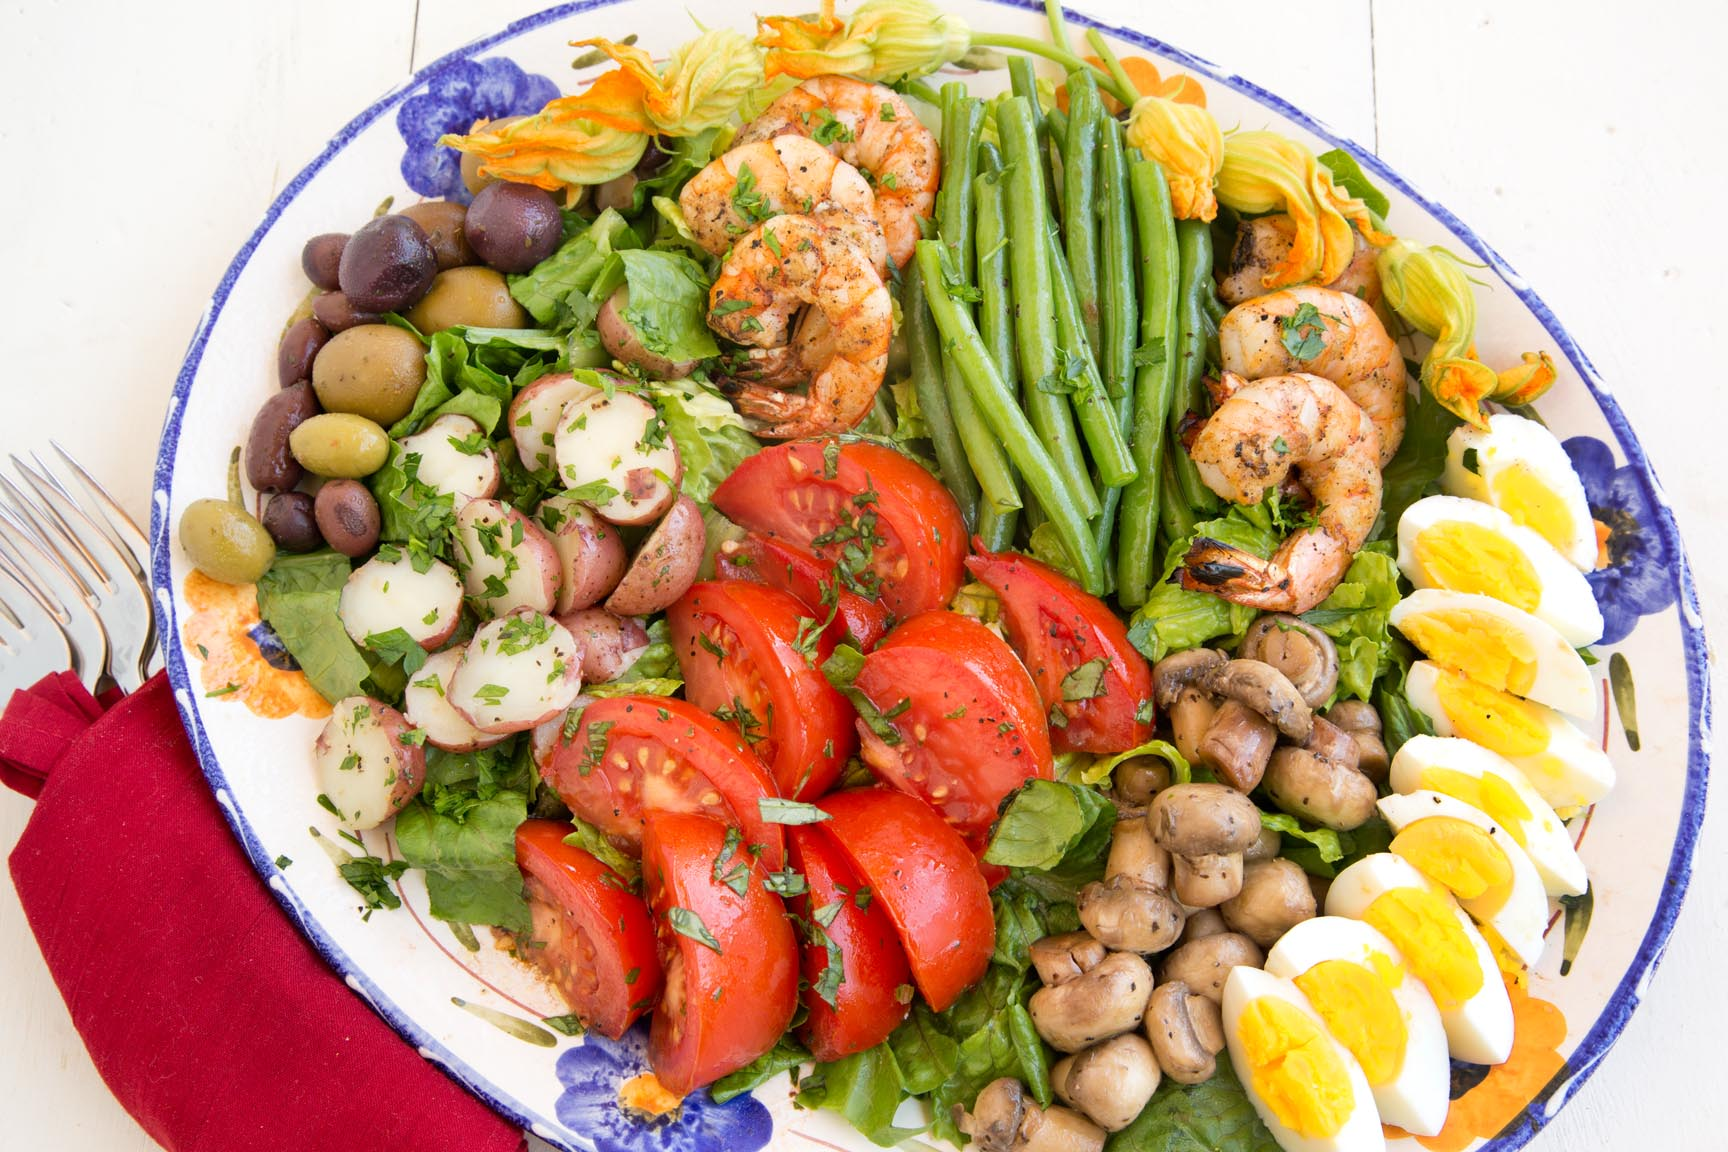 Summer Pasta Salad Recipes How To Make A Nicoise Salad With Grilled Shrimp Chef Dennis